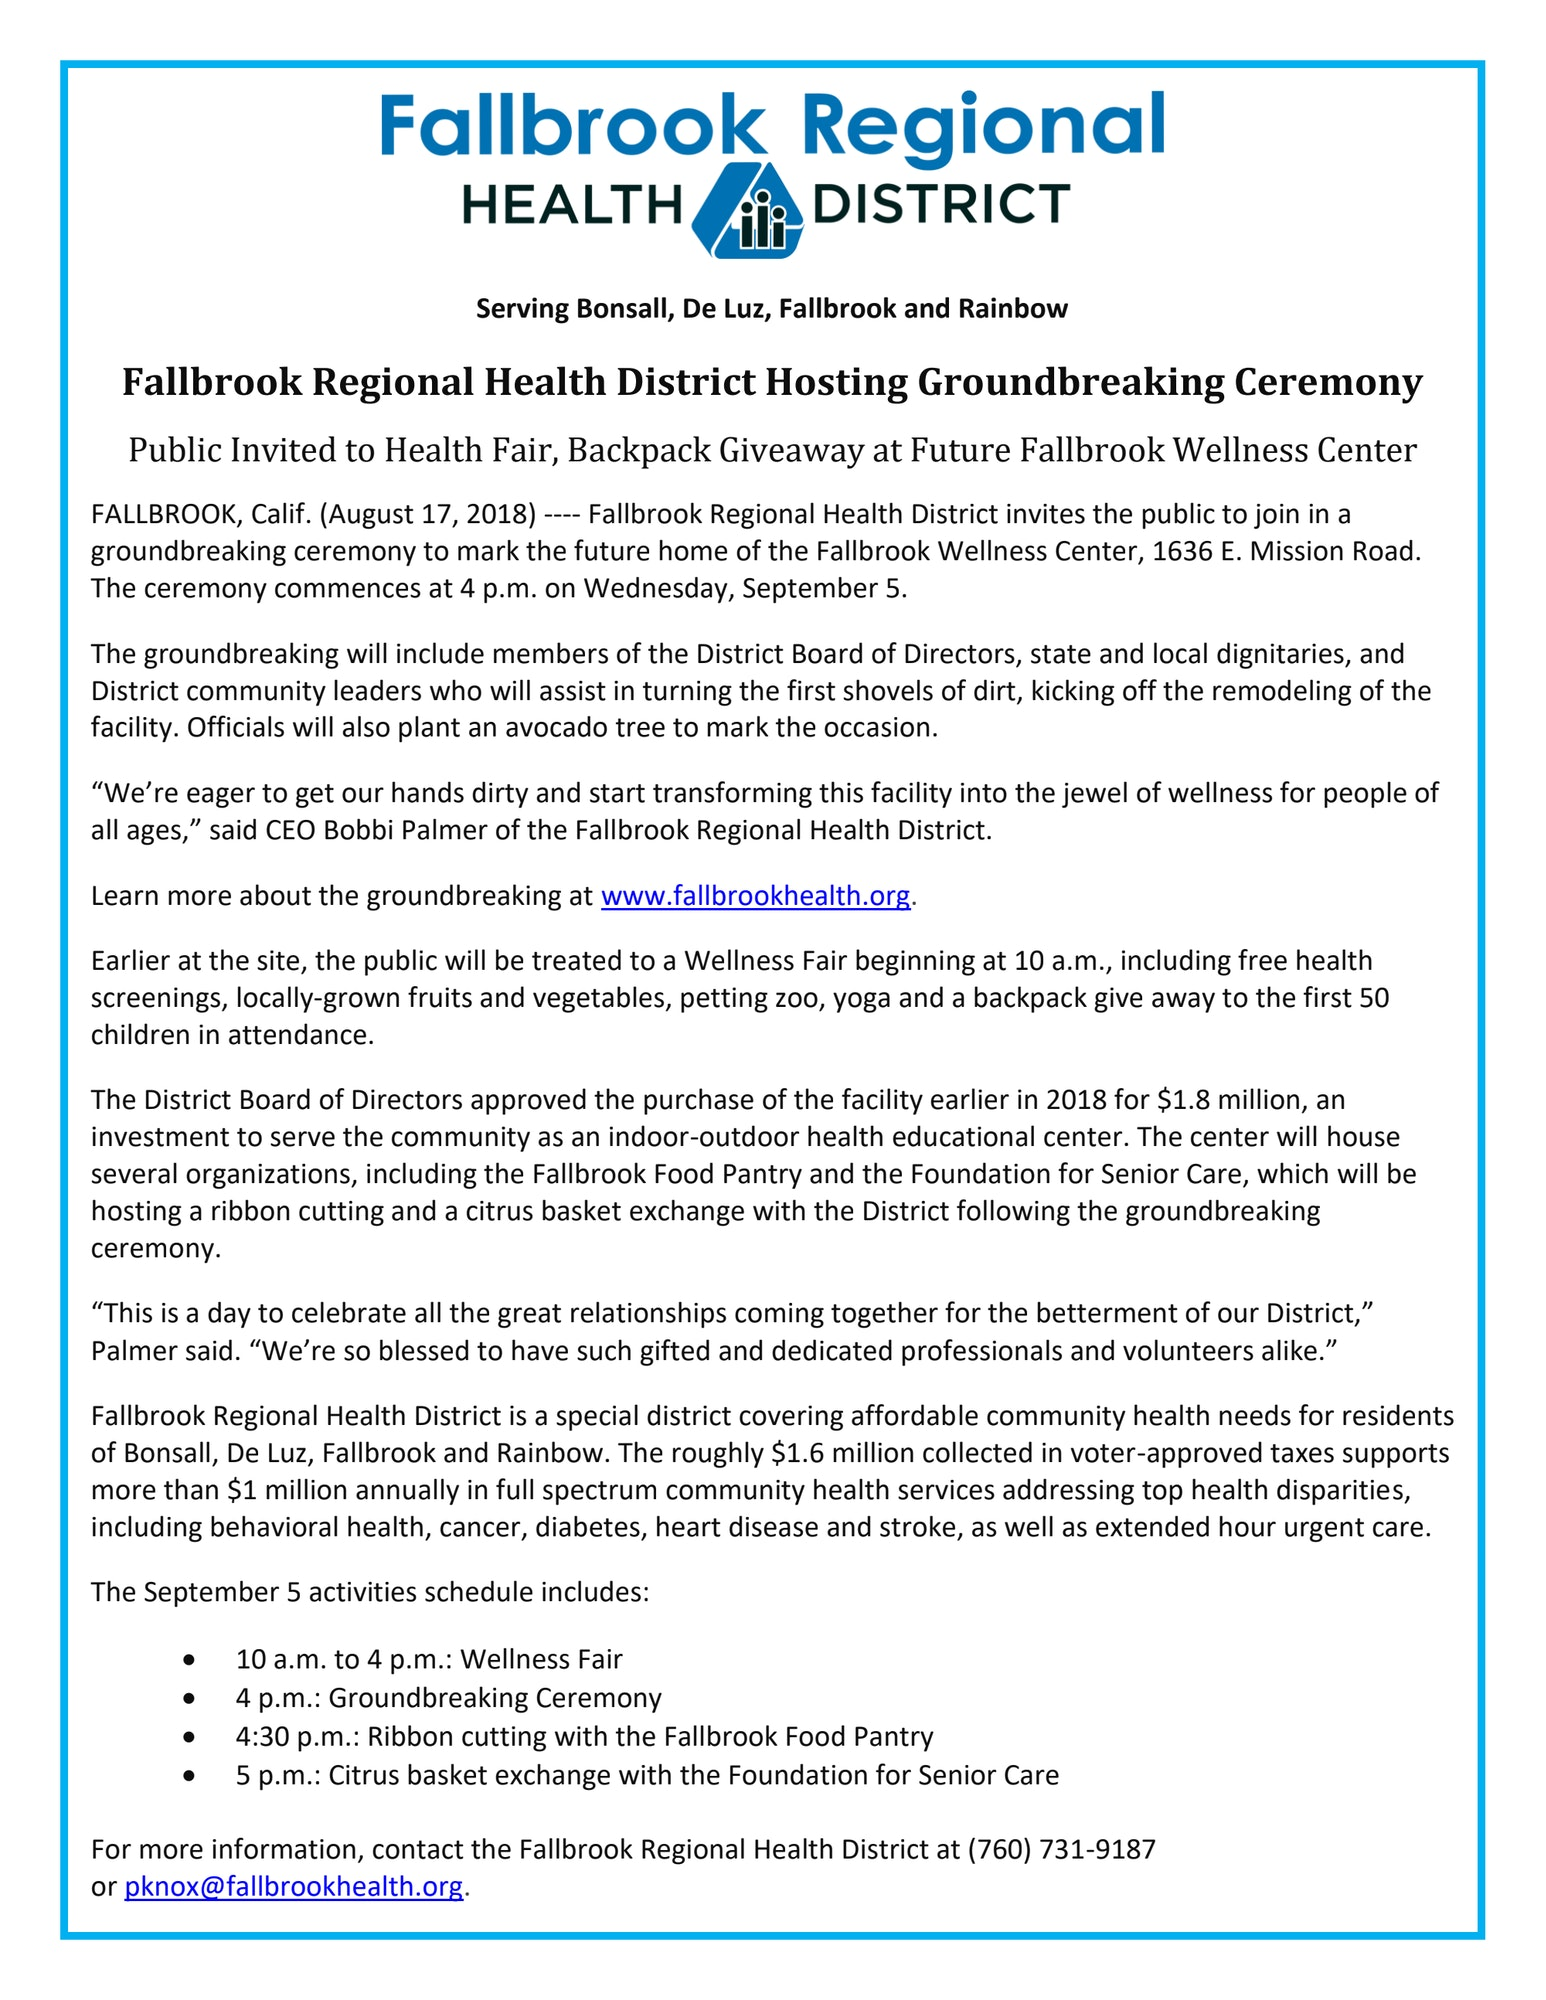 "Public Invited to Health Fair, Backpack Giveaway at Future Fallbrook Wellness Center FALLBROOK, Calif. (August 17, 2018) ---- Fallbrook Regional Health District invites the public to join in a groundbreaking ceremony to mark the future home of the Fallbrook Wellness Center, 1636 E. Mission Road. The ceremony commences at 4 p.m. on Wednesday, September 5. The groundbreaking will include members of the District Board of Directors, state and local dignitaries, and District community leaders who will assist in turning the first shovels of dirt, kicking off the remodeling of the facility. Officials will also plant an avocado tree to mark the occasion. ""We're eager to get our hands dirty and start transforming this facility into the jewel of wellness for people of all ages,"" said CEO Bobbi Palmer of the Fallbrook Regional Health District. Learn more about the groundbreaking at www.fallbrookhealth.org. Earlier at the site, the public will be treated to a Wellness Fair beginning at 10 a.m., including free health screenings, locally-grown fruits and vegetables, petting zoo, yoga and a backpack give away to the first 50 children in attendance. The District Board of Directors approved the purchase of the facility earlier in 2018 for $1.8 million, an investment to serve the community as an indoor-outdoor health educational center. The center will house several organizations, including the Fallbrook Food Pantry and the Foundation for Senior Care, which will be hosting a ribbon cutting and a citrus basket exchange with the District following the groundbreaking ceremony. ""This is a day to celebrate all the great relationships coming together for the betterment of our District,"" Palmer said. ""We're so blessed to have such gifted and dedicated professionals and volunteers alike."" Fallbrook Regional Health District is a special district covering affordable community health needs for residents of Bonsall, De Luz, Fallbrook and Rainbow. The roughly $1.6 million collected in voter-approved taxes supports more than $1 million annually in full spectrum community health services addressing top health disparities, including behavioral health, cancer, diabetes, heart disease and stroke, as well as extended hour urgent care. The September 5 activities schedule includes: •         10 a.m. to 4 p.m.: Wellness Fair •         4 p.m.: Groundbreaking Ceremony •         4:30 p.m.: Ribbon cutting with the Fallbrook Food Pantry •         5 p.m.: Citrus basket exchange with the Foundation for Senior Care"